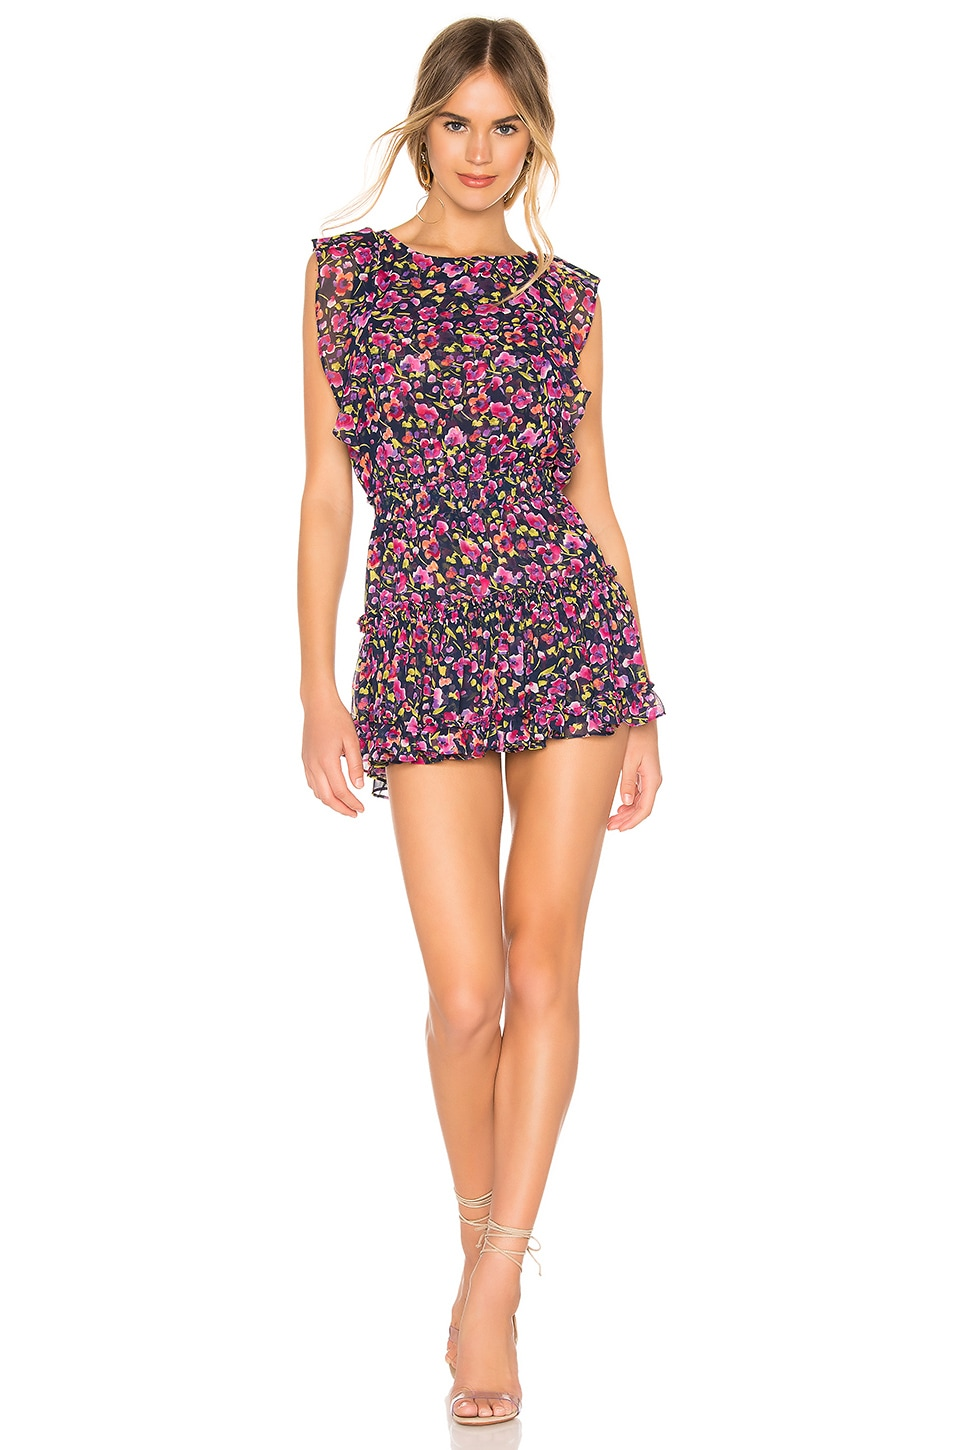 MISA Los Angeles X REVOLVE Ginia Dress in Multi Floral